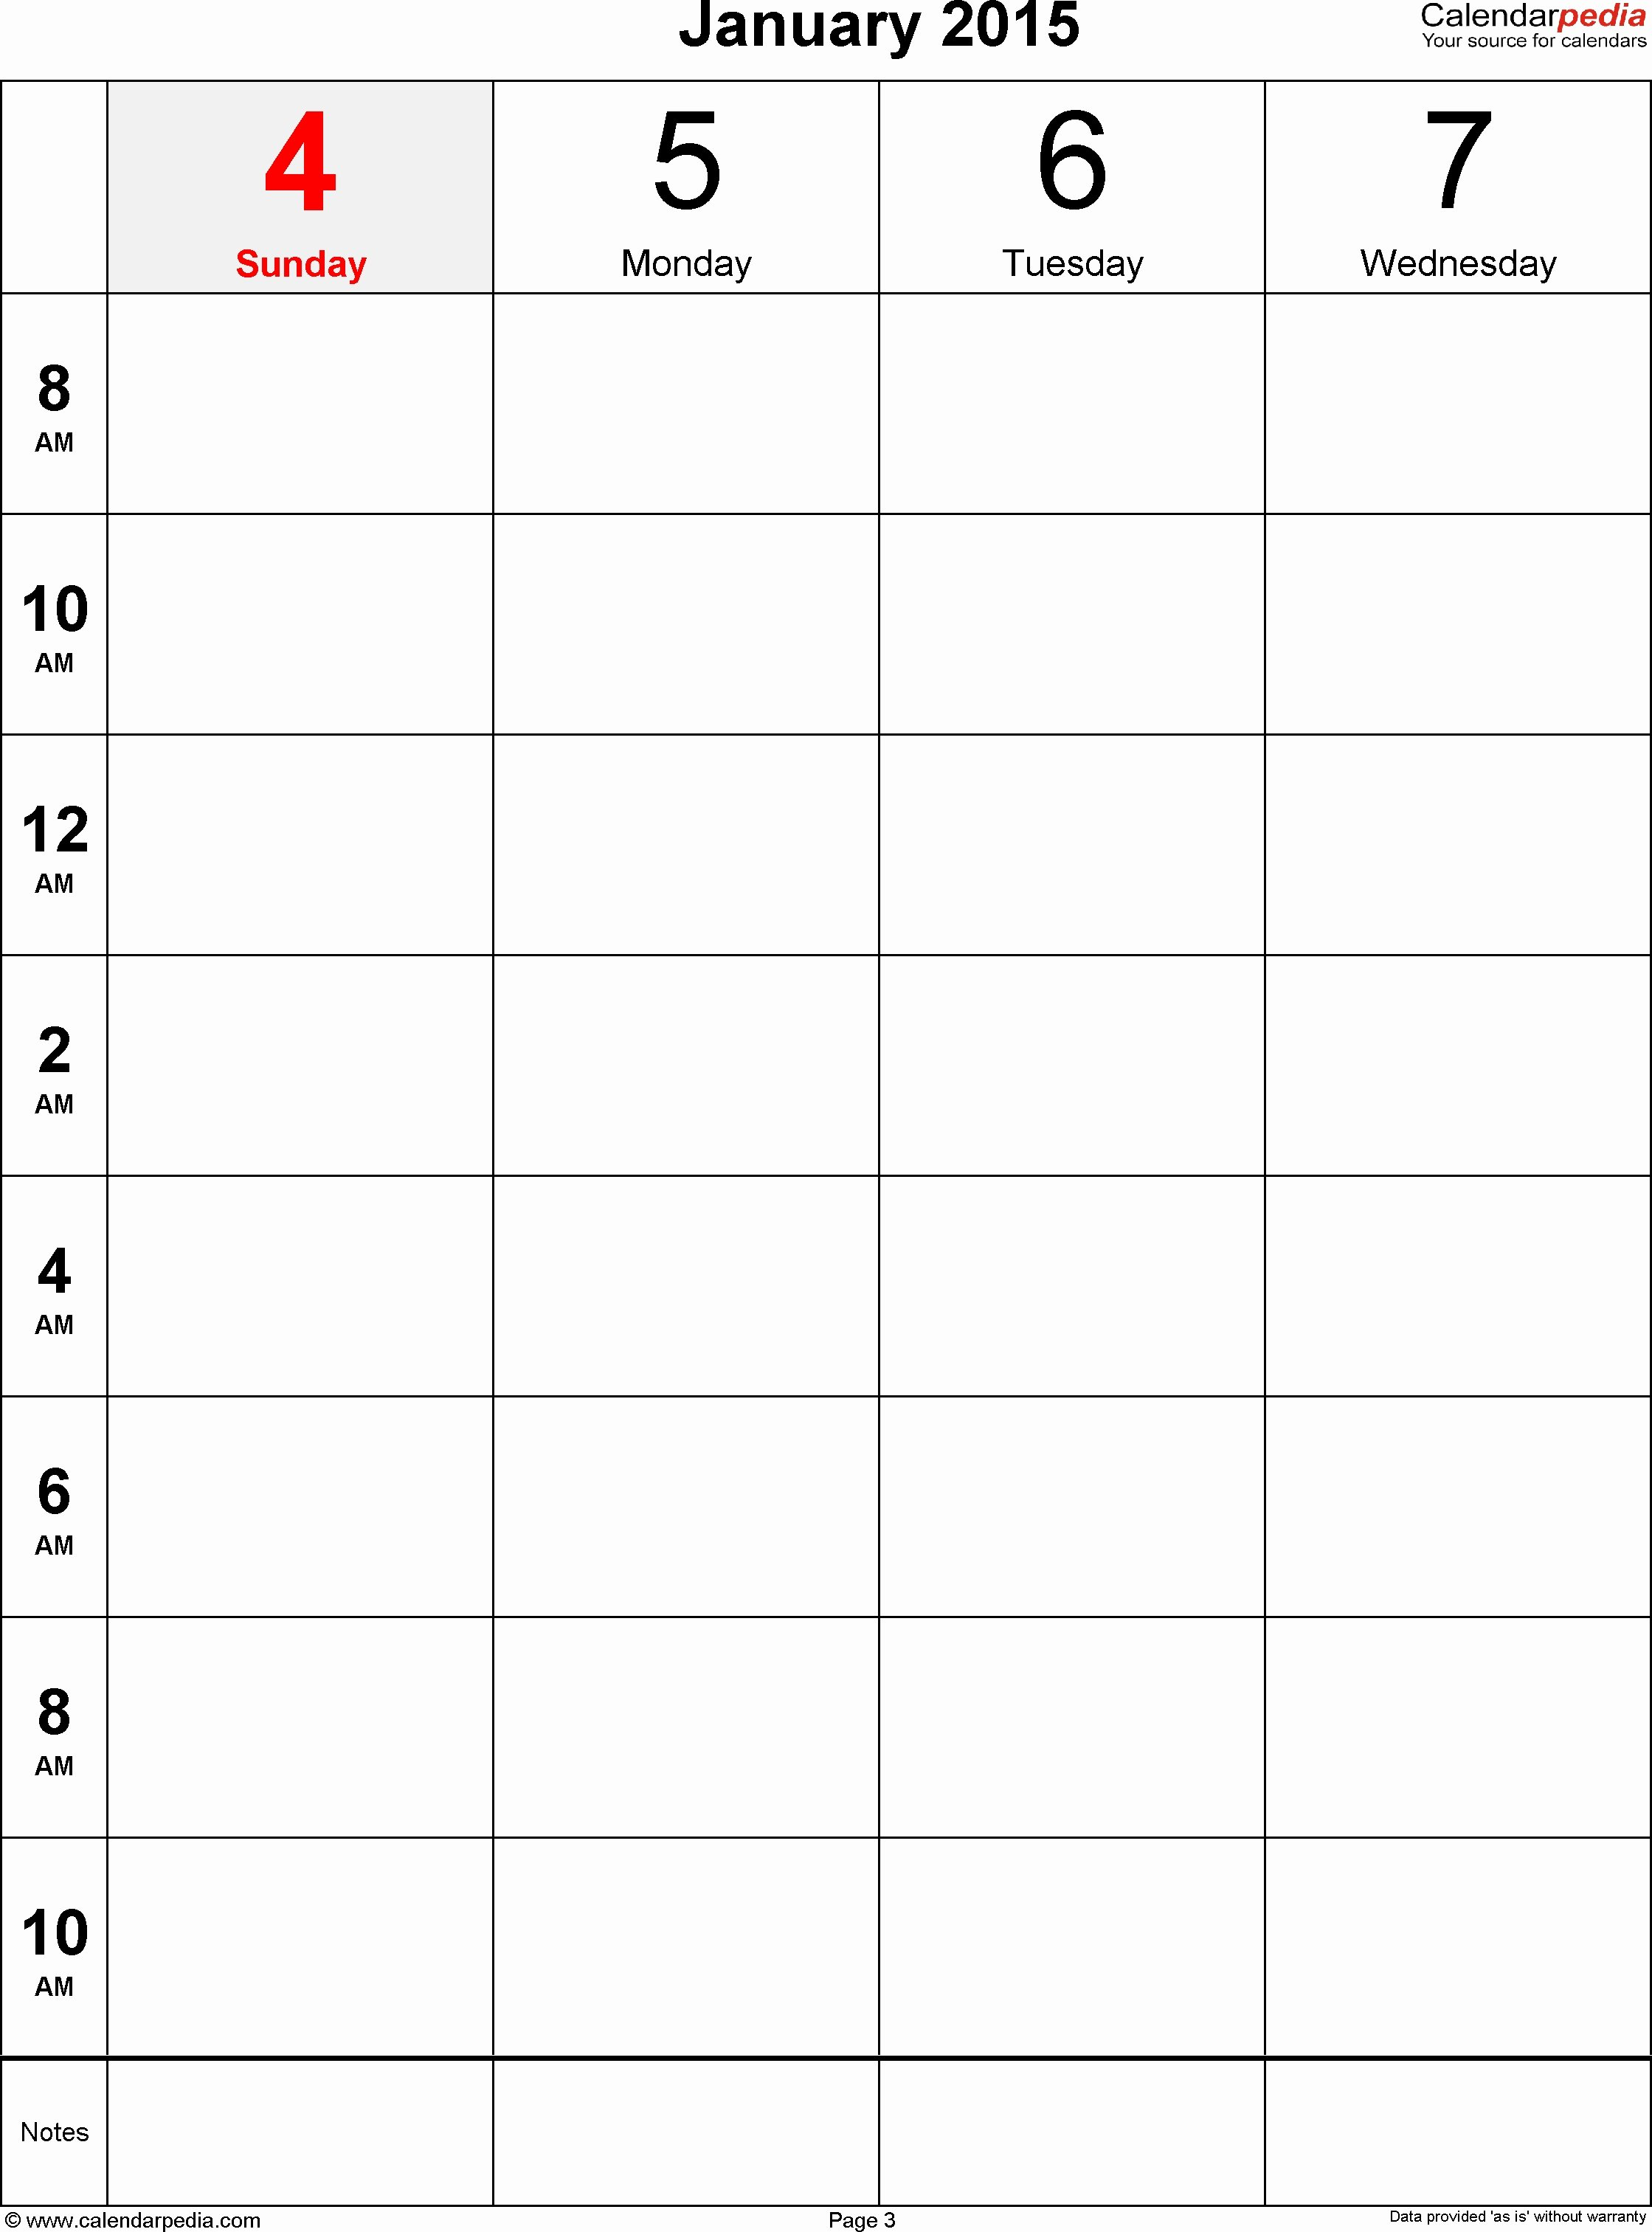 One Week Schedule Template Awesome E Week Calendar Template with Hours – Calendar Printable